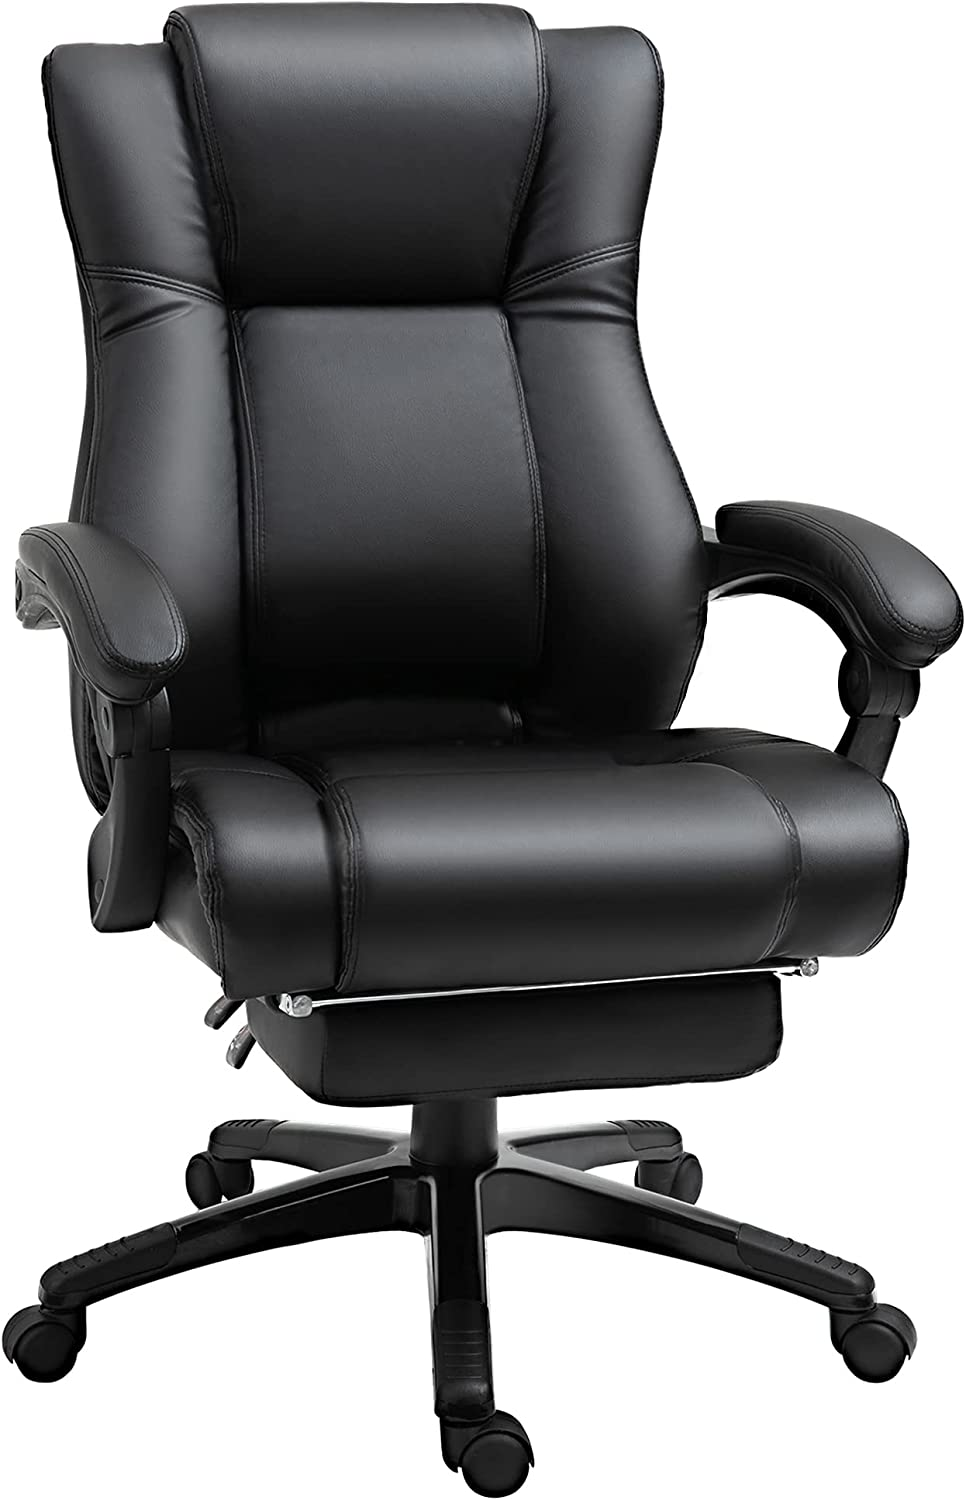 Vinsetto Executive Low price High Japan's largest assortment Back Computer Chair Office Des